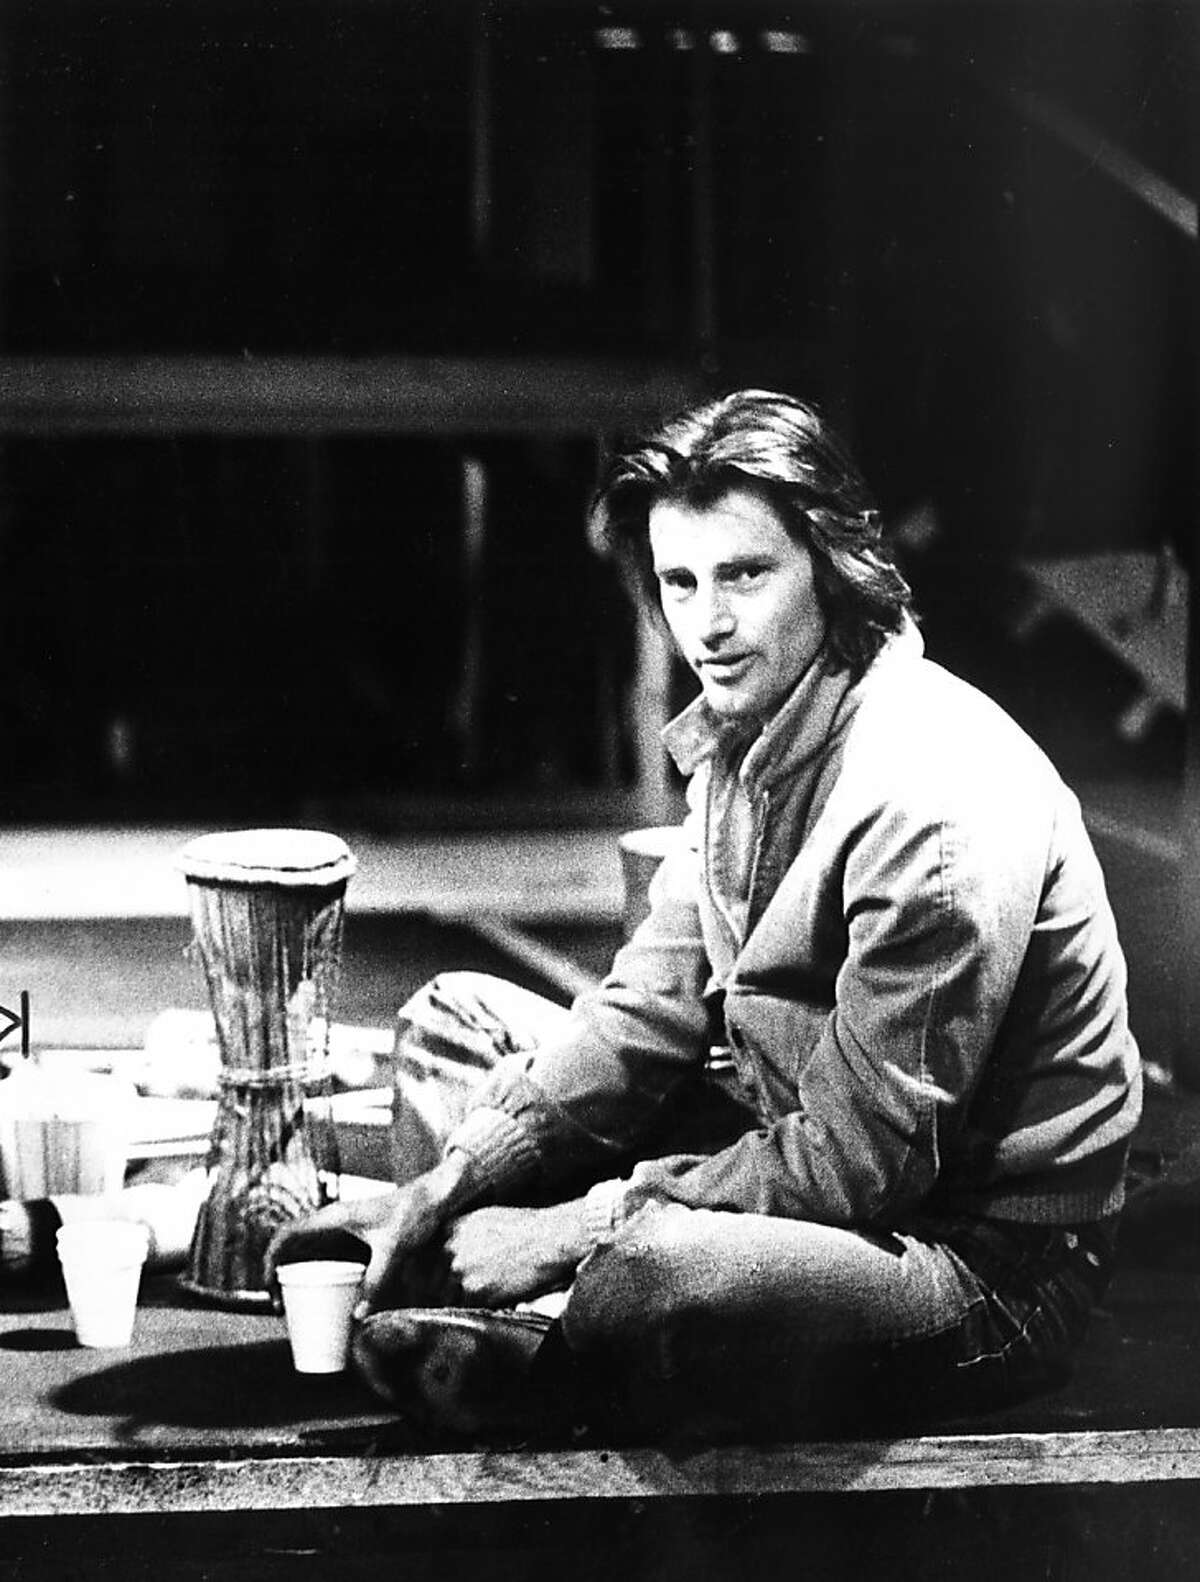 """Playwright Sam Shepard, shown in 1980 just as the Magic Theatre was about to stage the world premire of his play """"True West."""" The year before, he'd won the Pulitzer Prize in drama for """"Buried Child,"""" which also received its premiere at the Magic."""